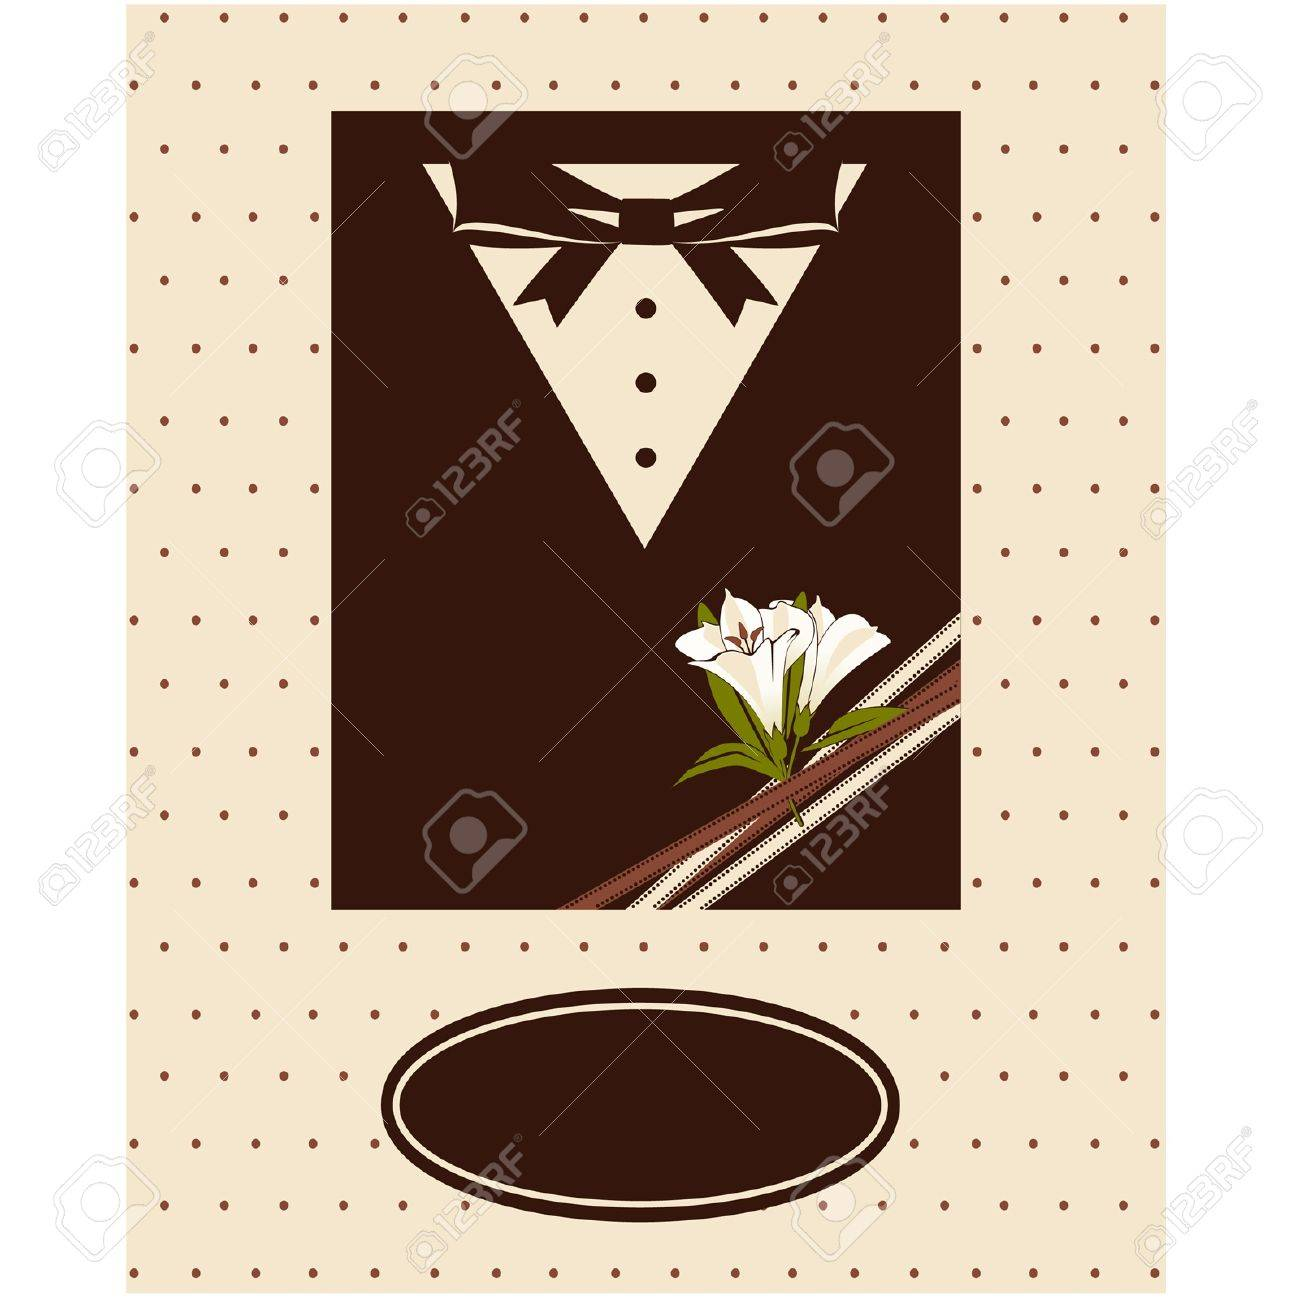 Vintage background with tuxedo shirt and bowtie close up Stock Vector - 14577285